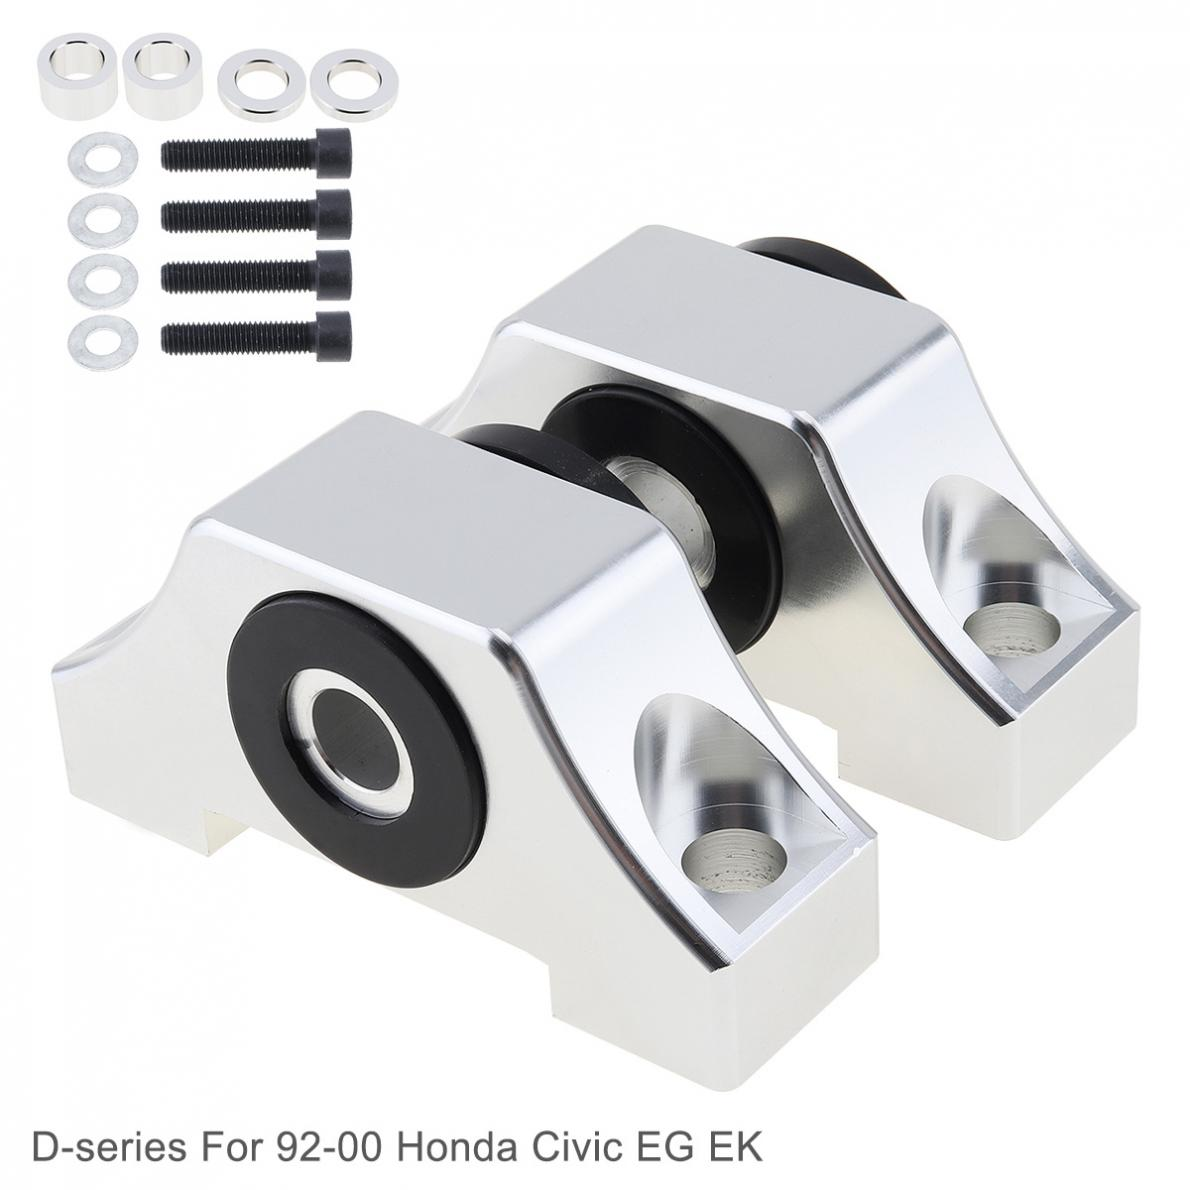 Engine Motor Torque Mounting Kit B-series / D-series with Professional Spare Parts Fit for 92-01 <font><b>Honda</b></font> Civic EG EK image